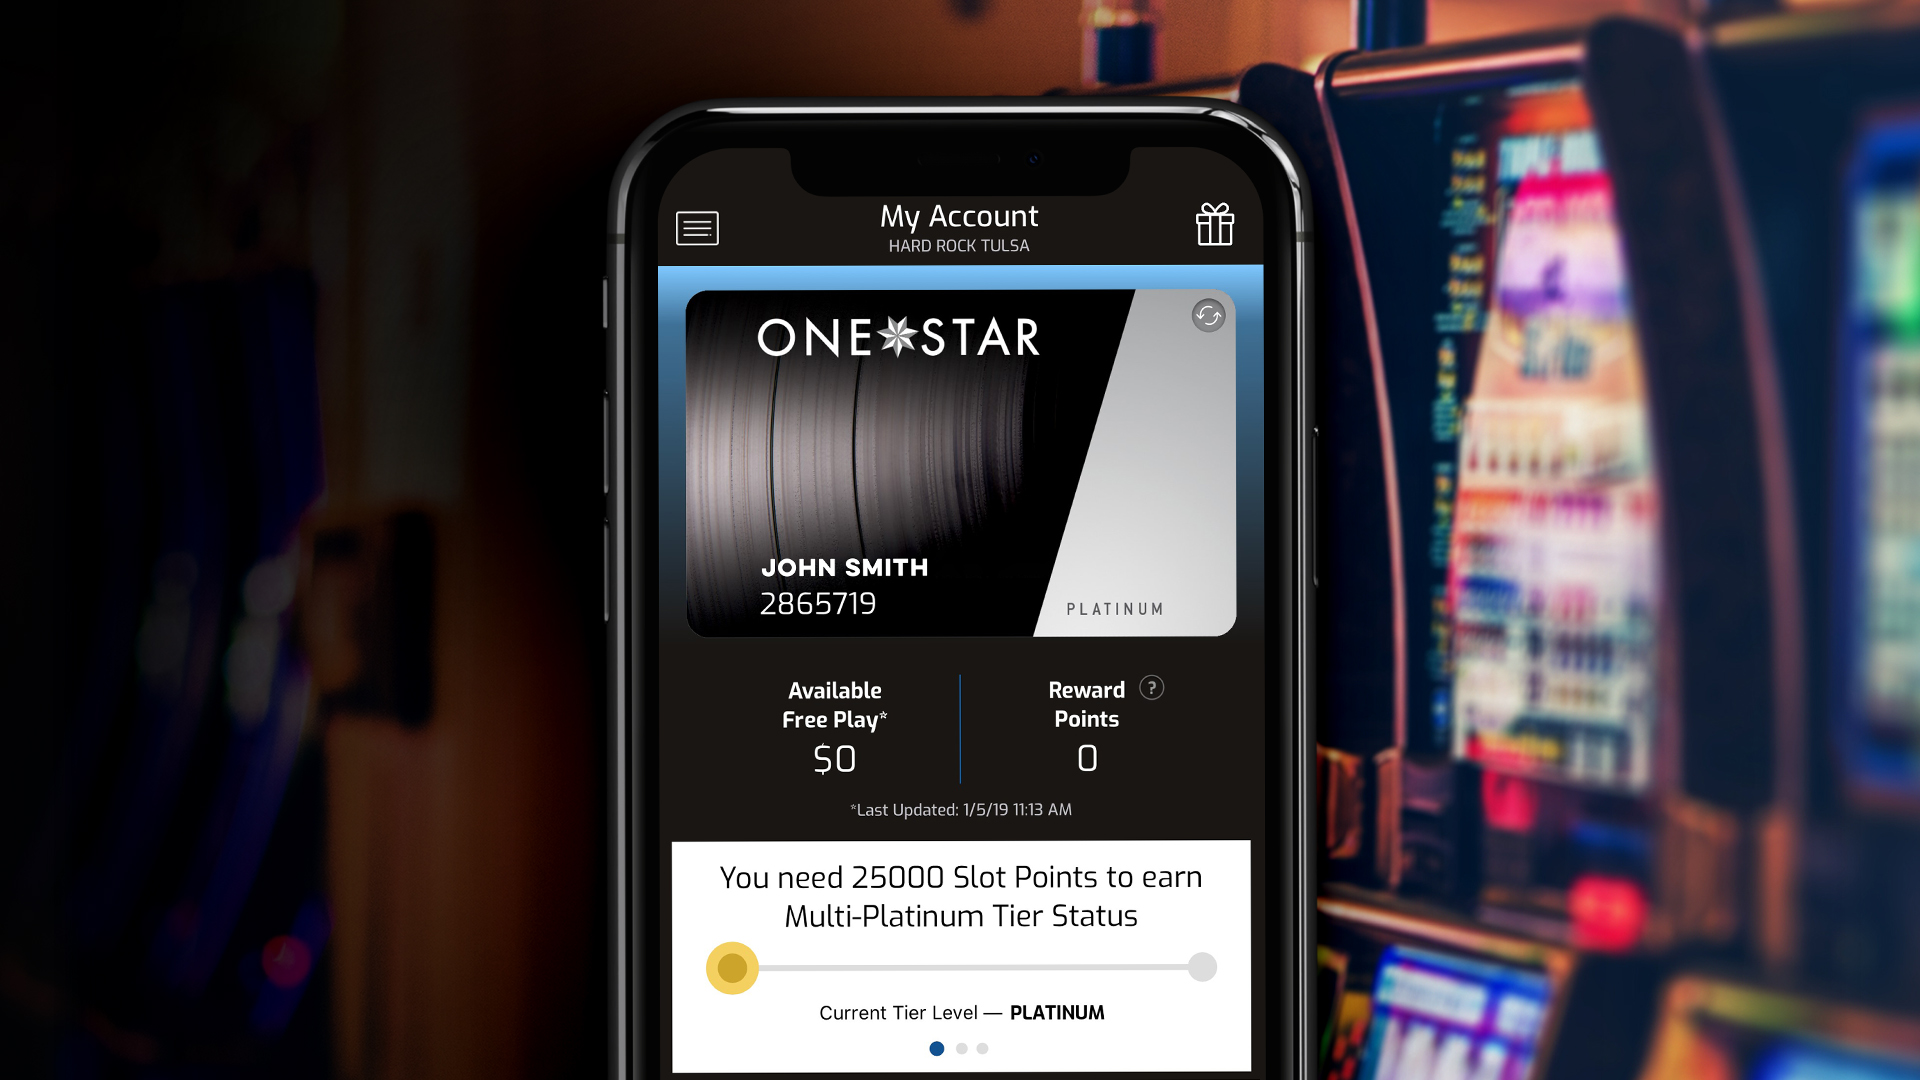 One Star Rewards App